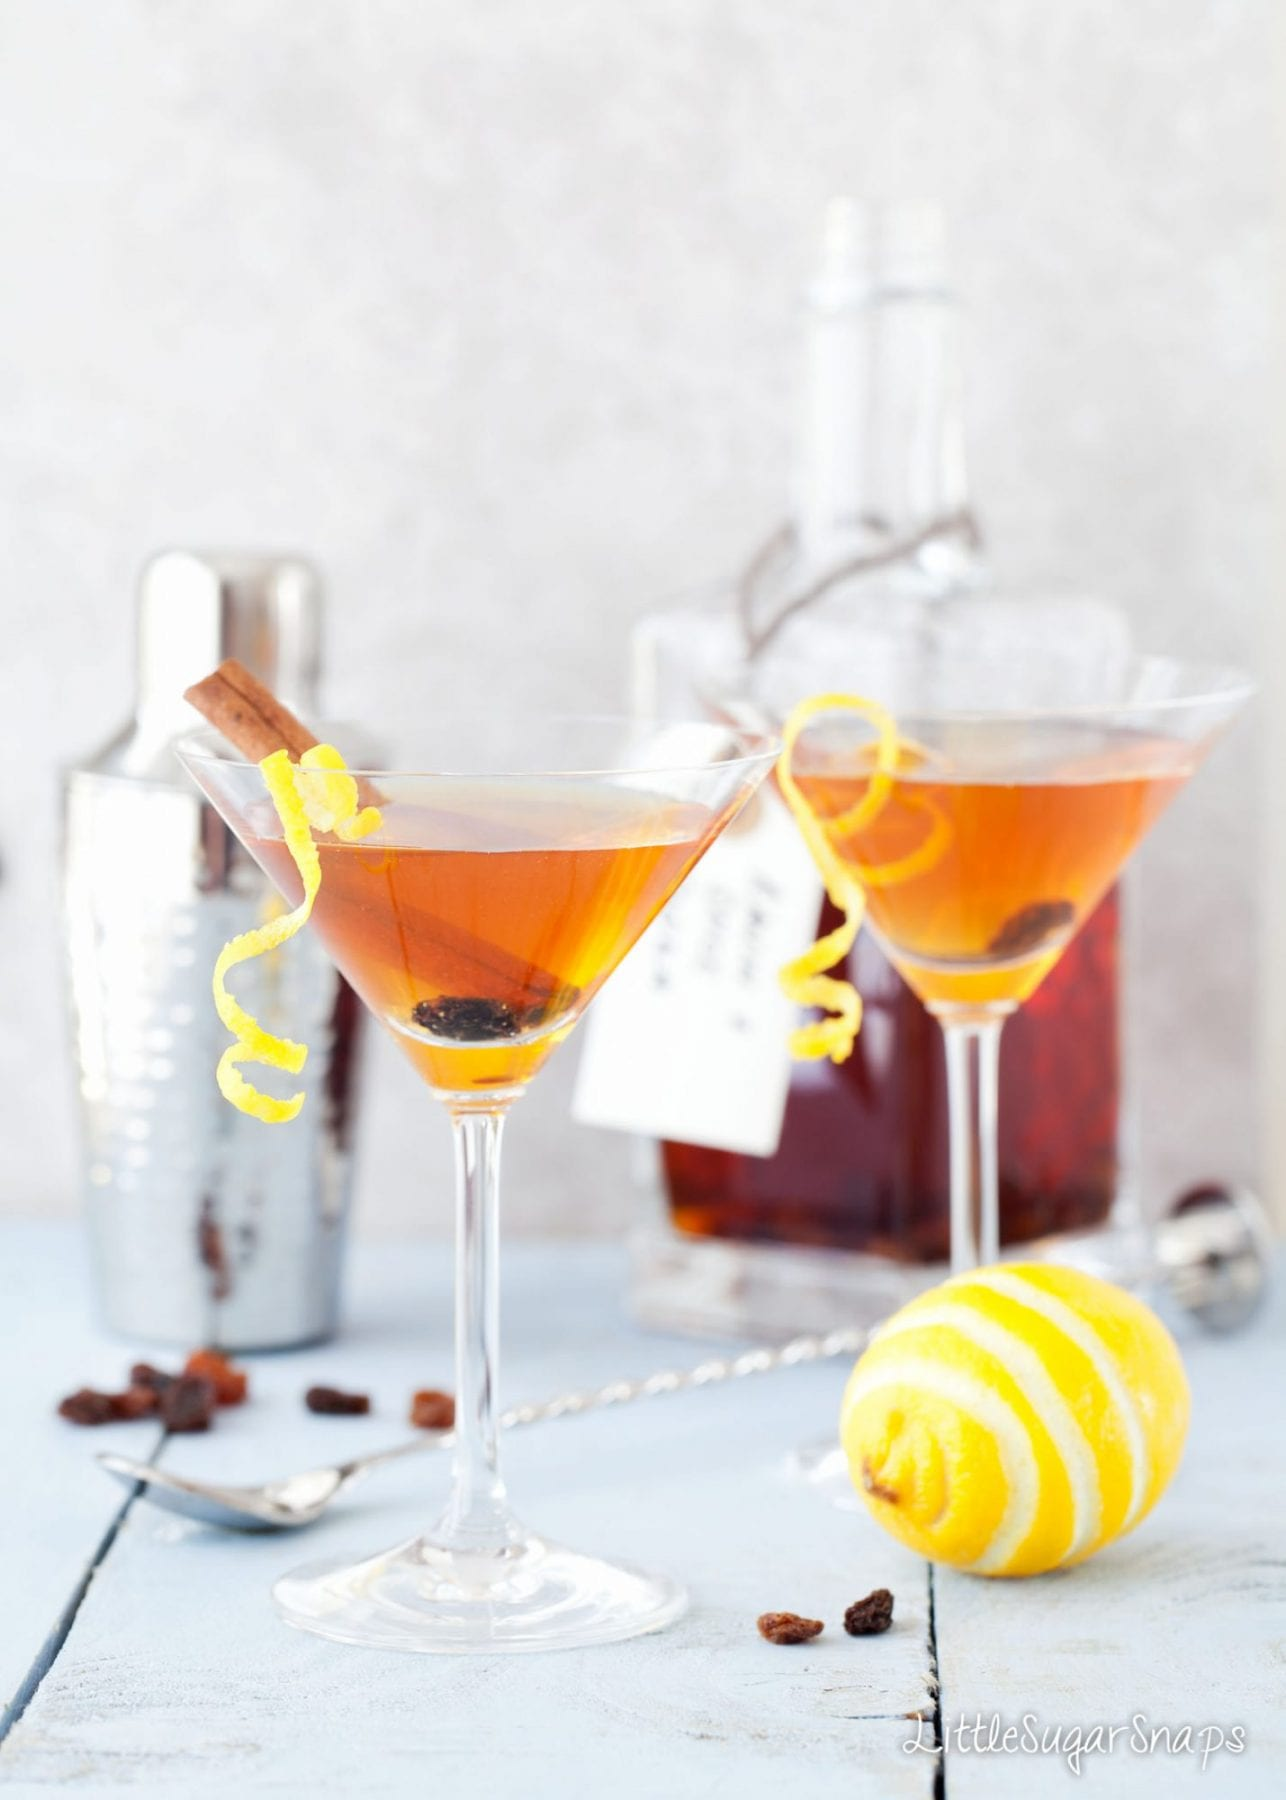 Gold cocktails in martini glasses, liqueur in bottle, lemon and spices